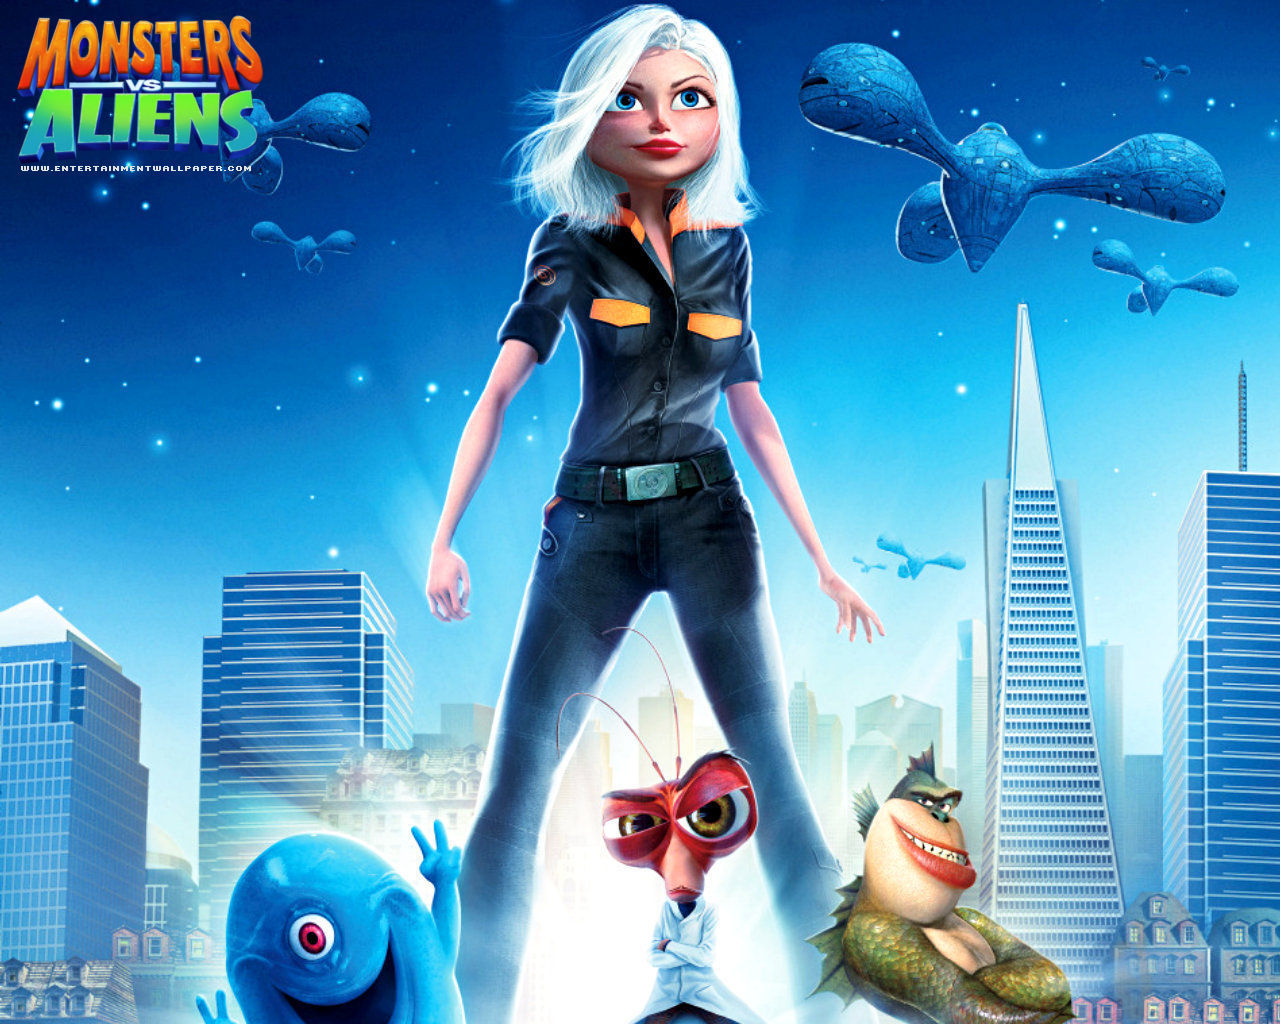 Agree, Monsters vs aliens think